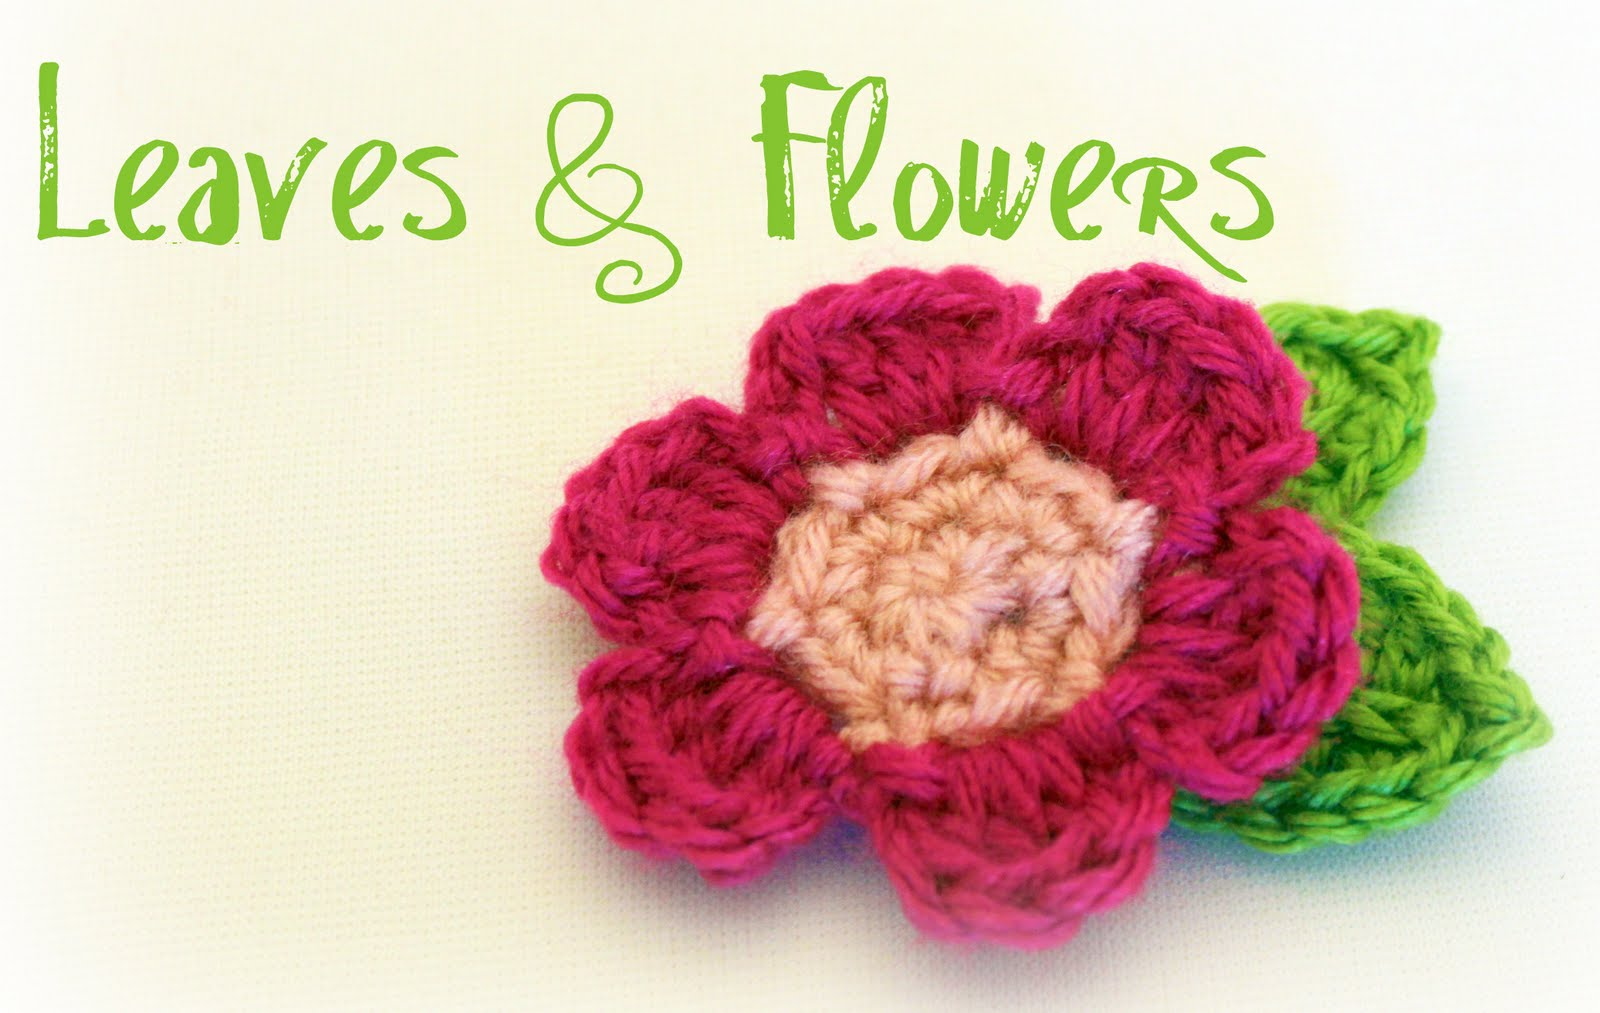 PATTERN FOR CROCHET FLOWER ? Easy Crochet Patterns